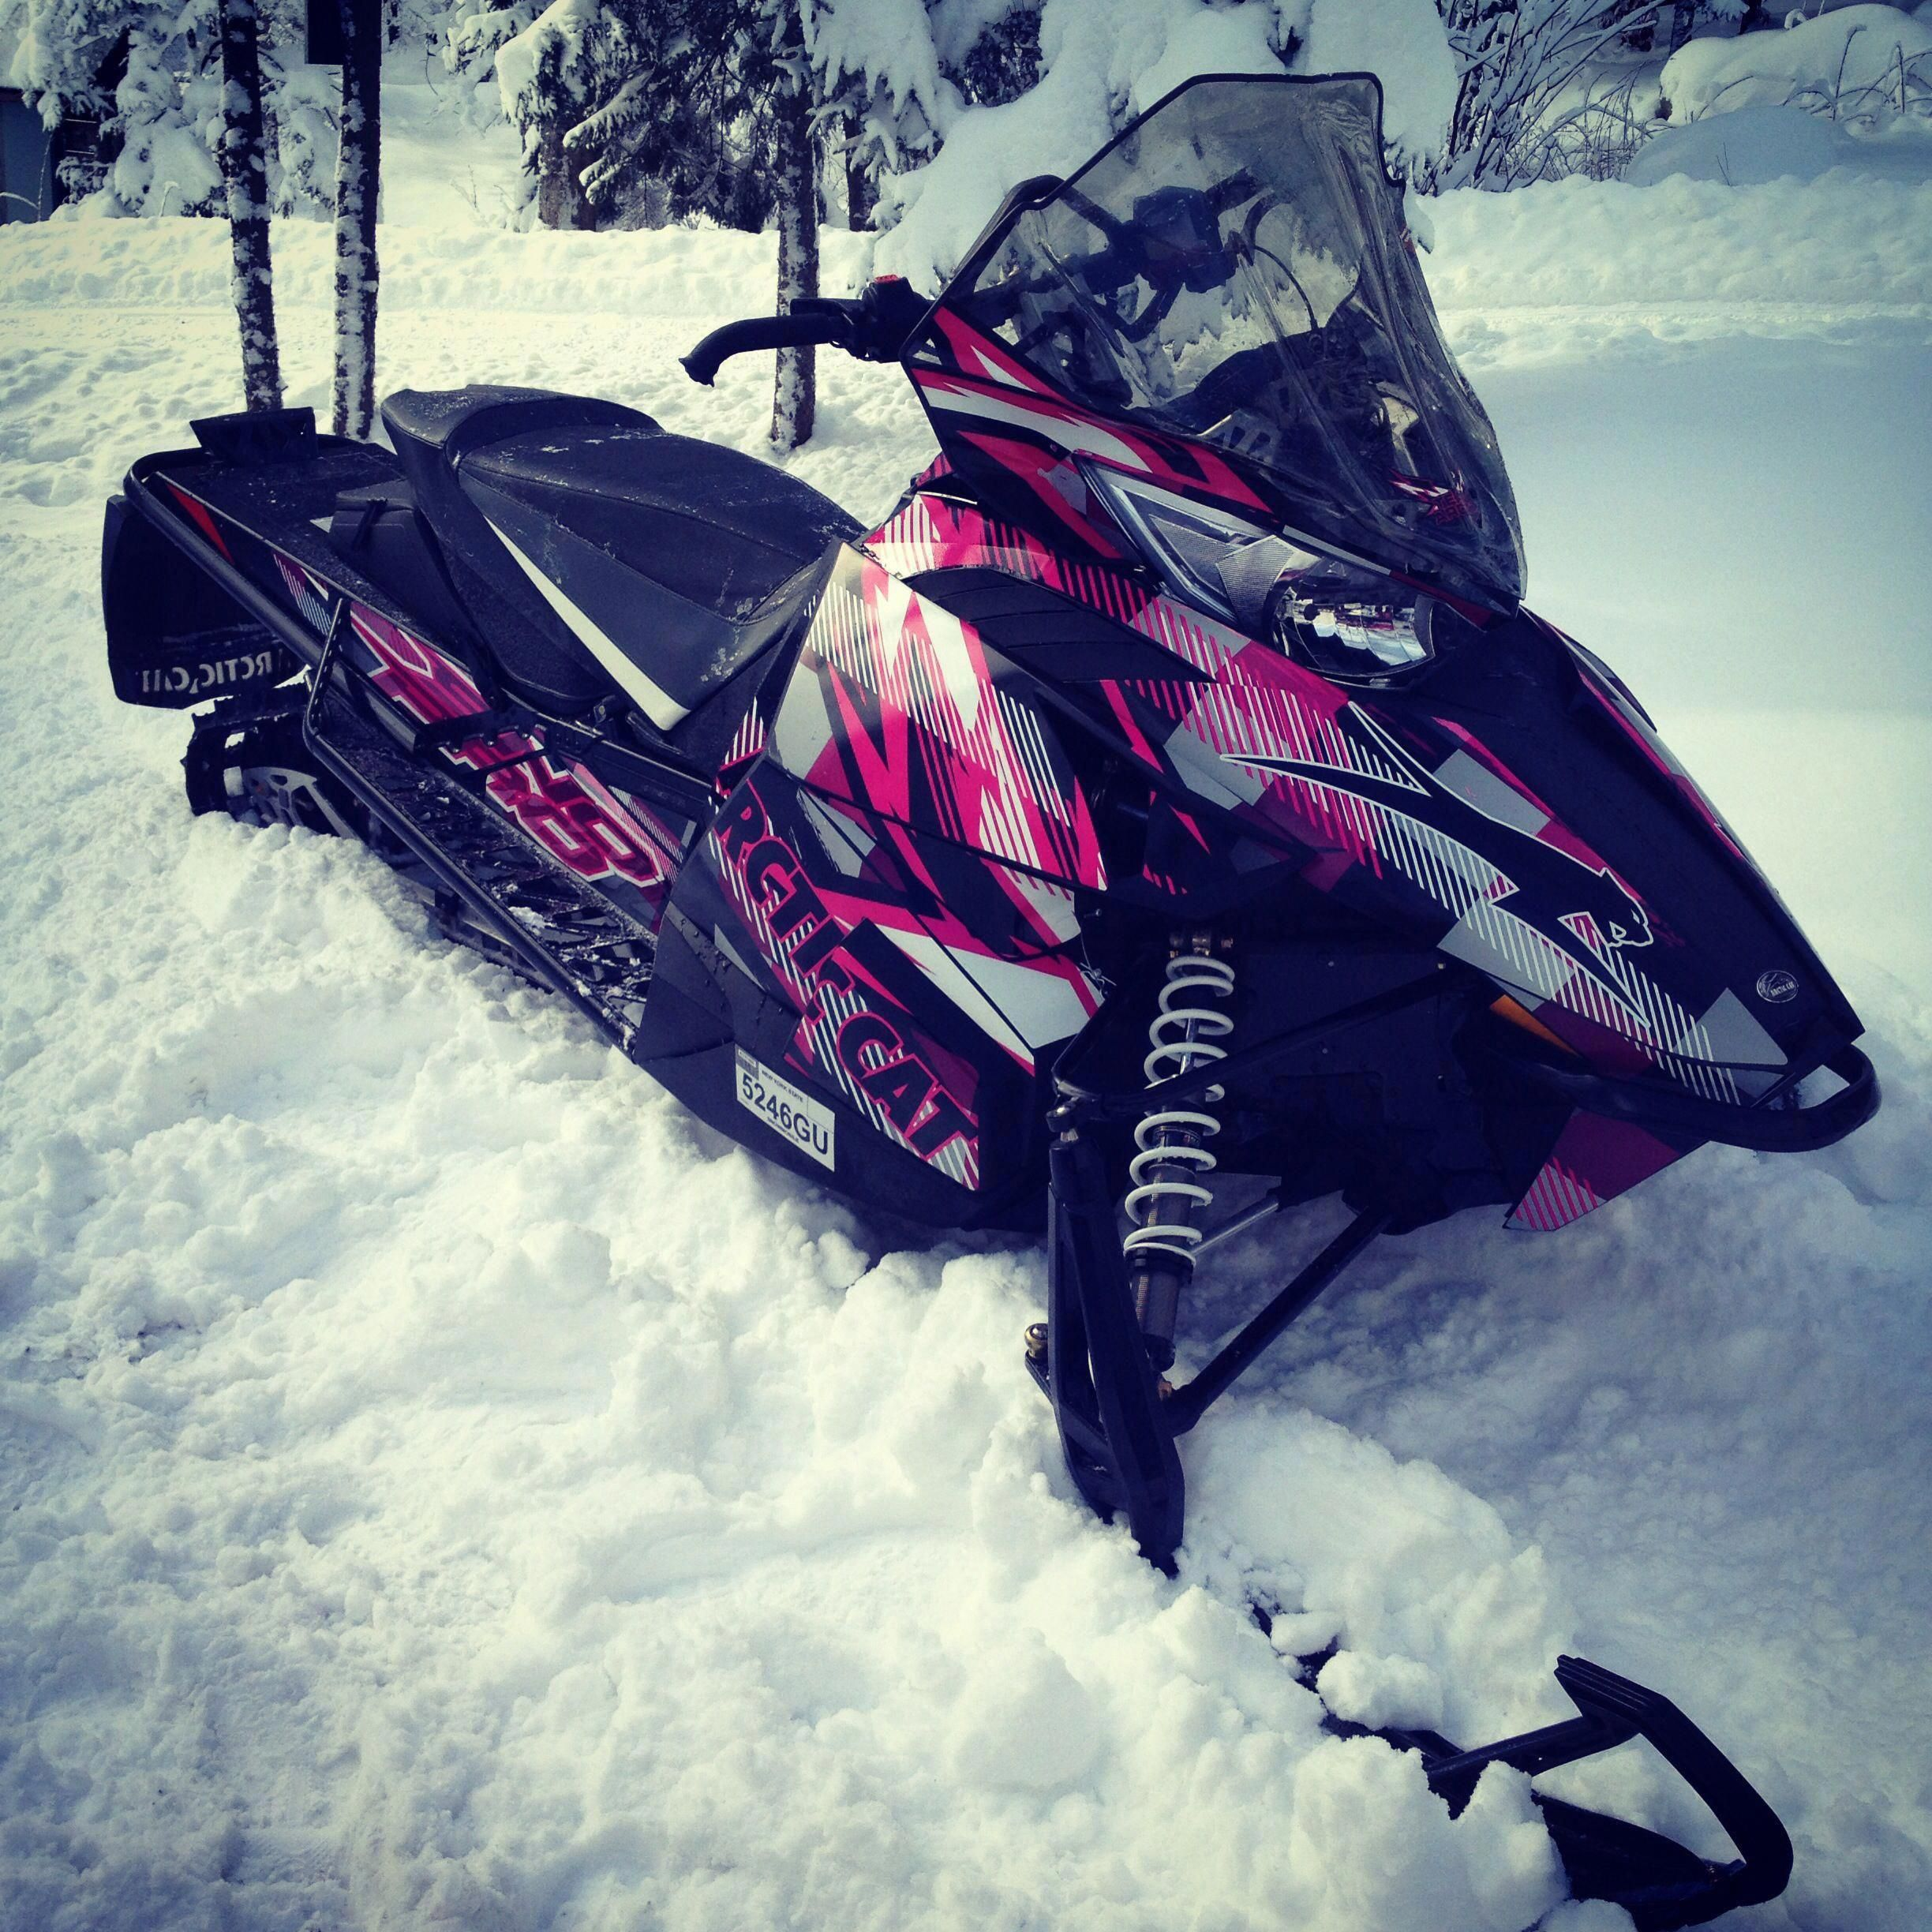 Discover even more info on Snowmobiles. Visit our website